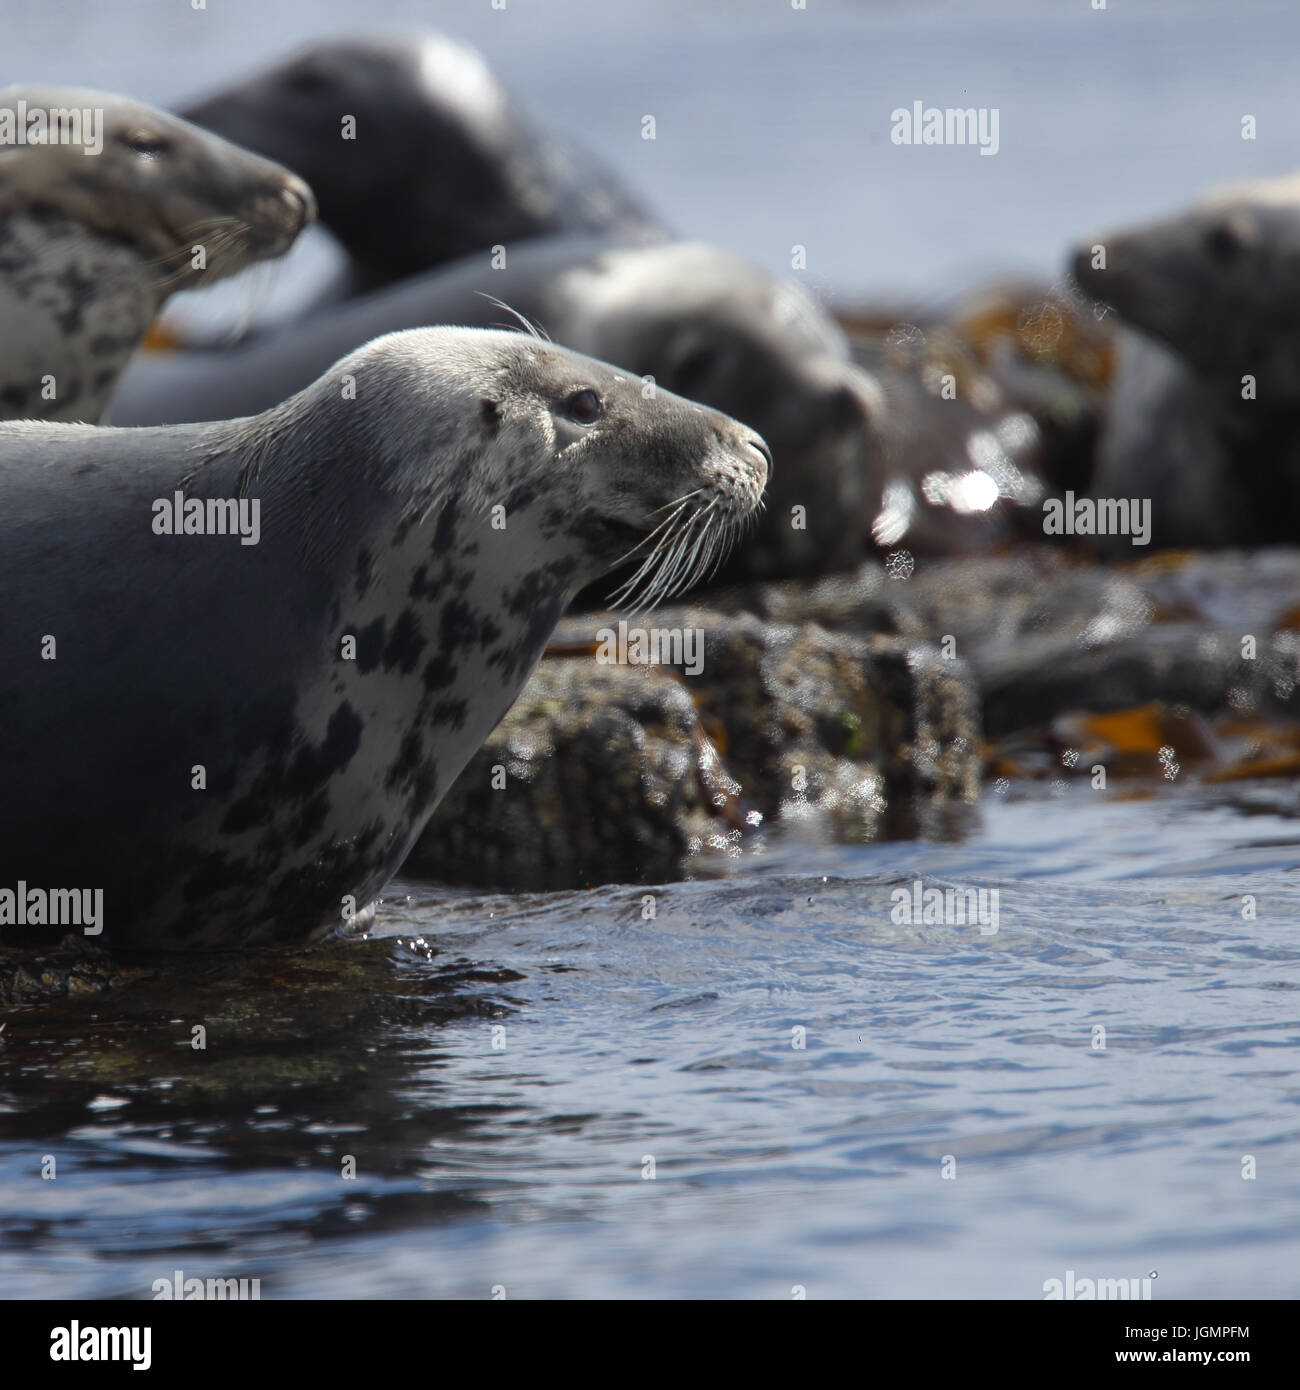 Grey Seal (Halichoerus grypus) resting on rocks at the water's edge, Farne Islands, Northumbria, England, UK. Stock Photo